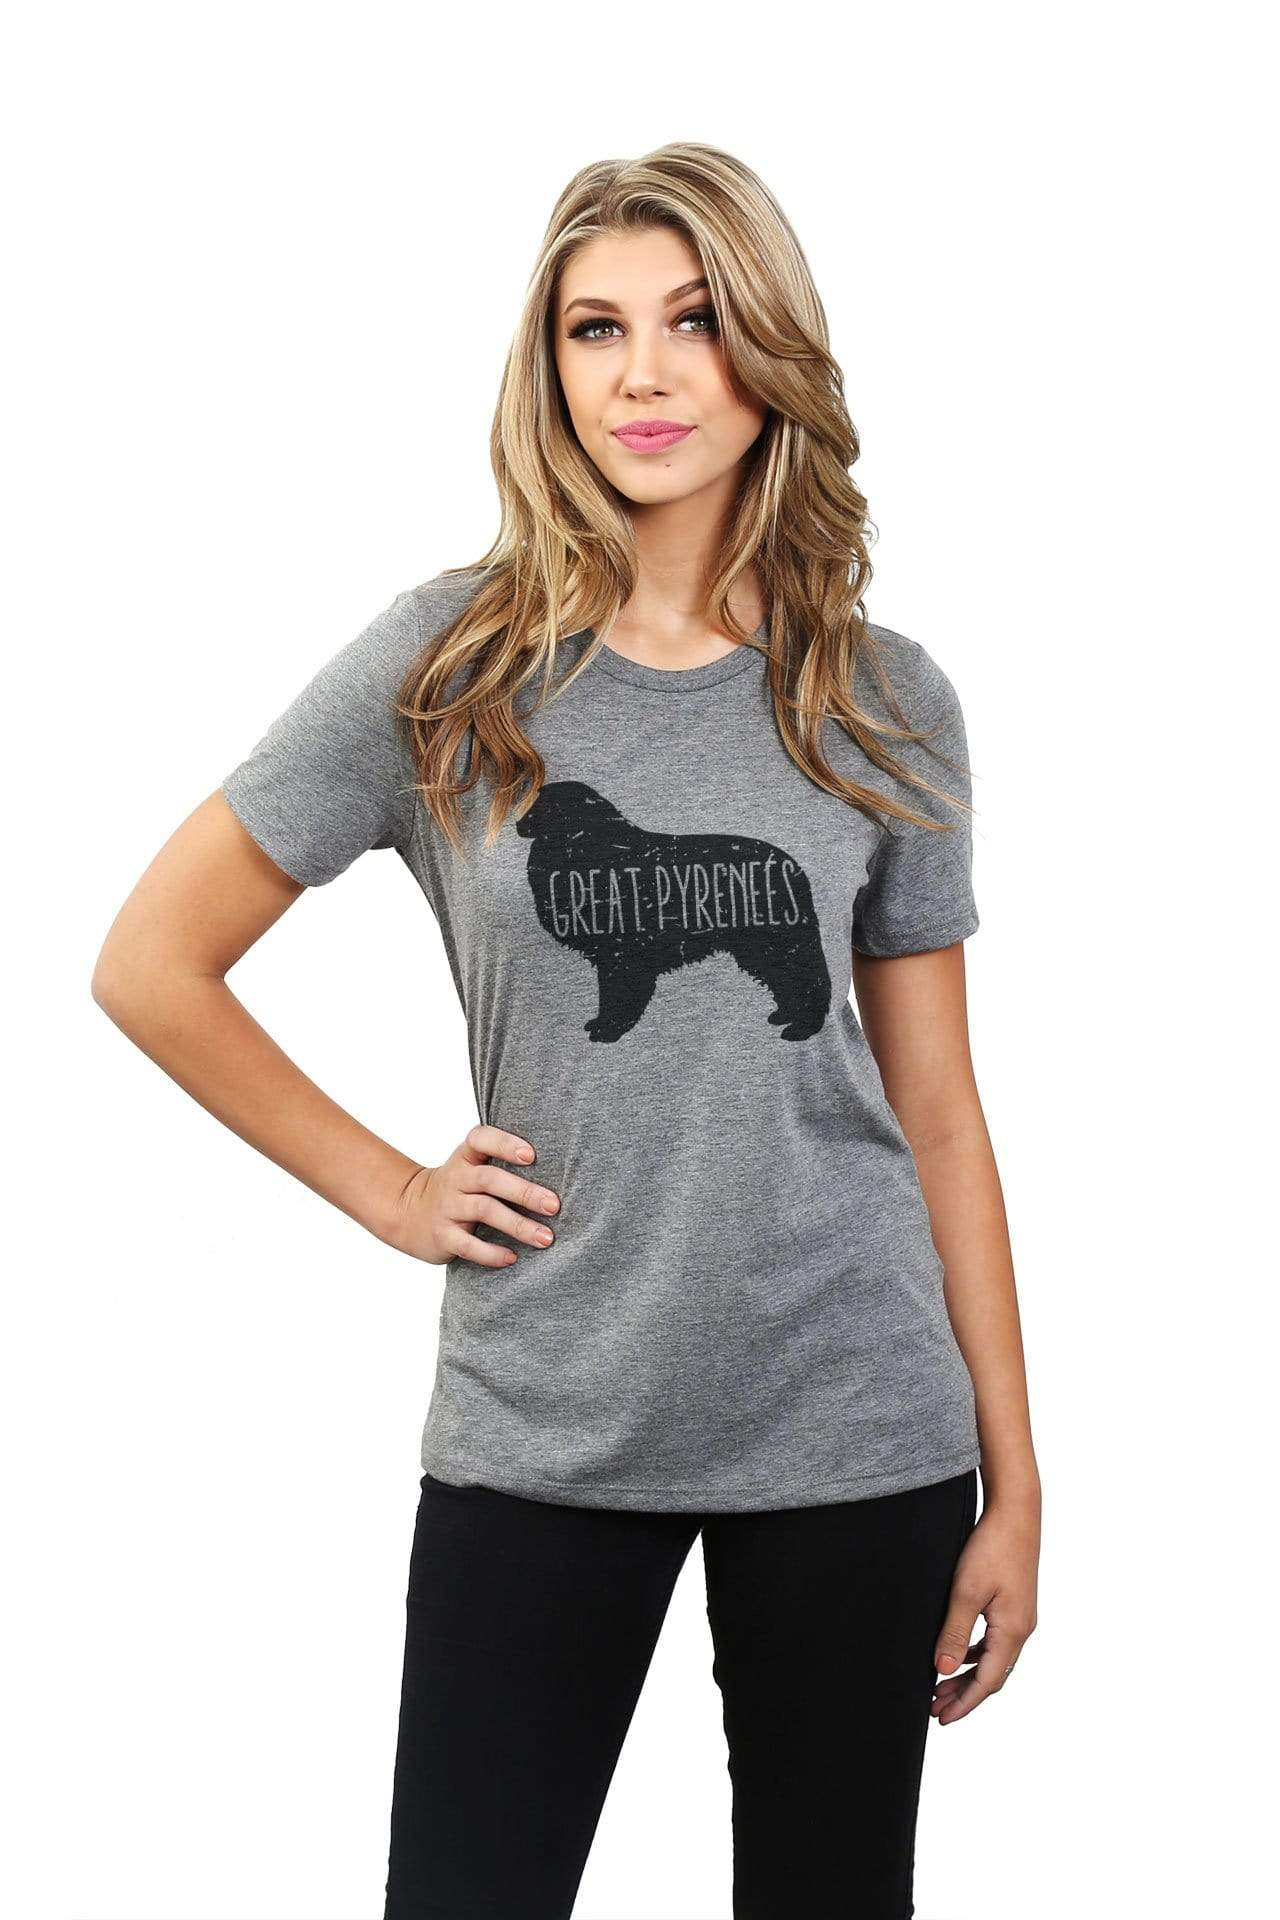 Great Pyrenees Dog Silhouette Women Heather Grey Relaxed Crew T-Shirt Tee Top